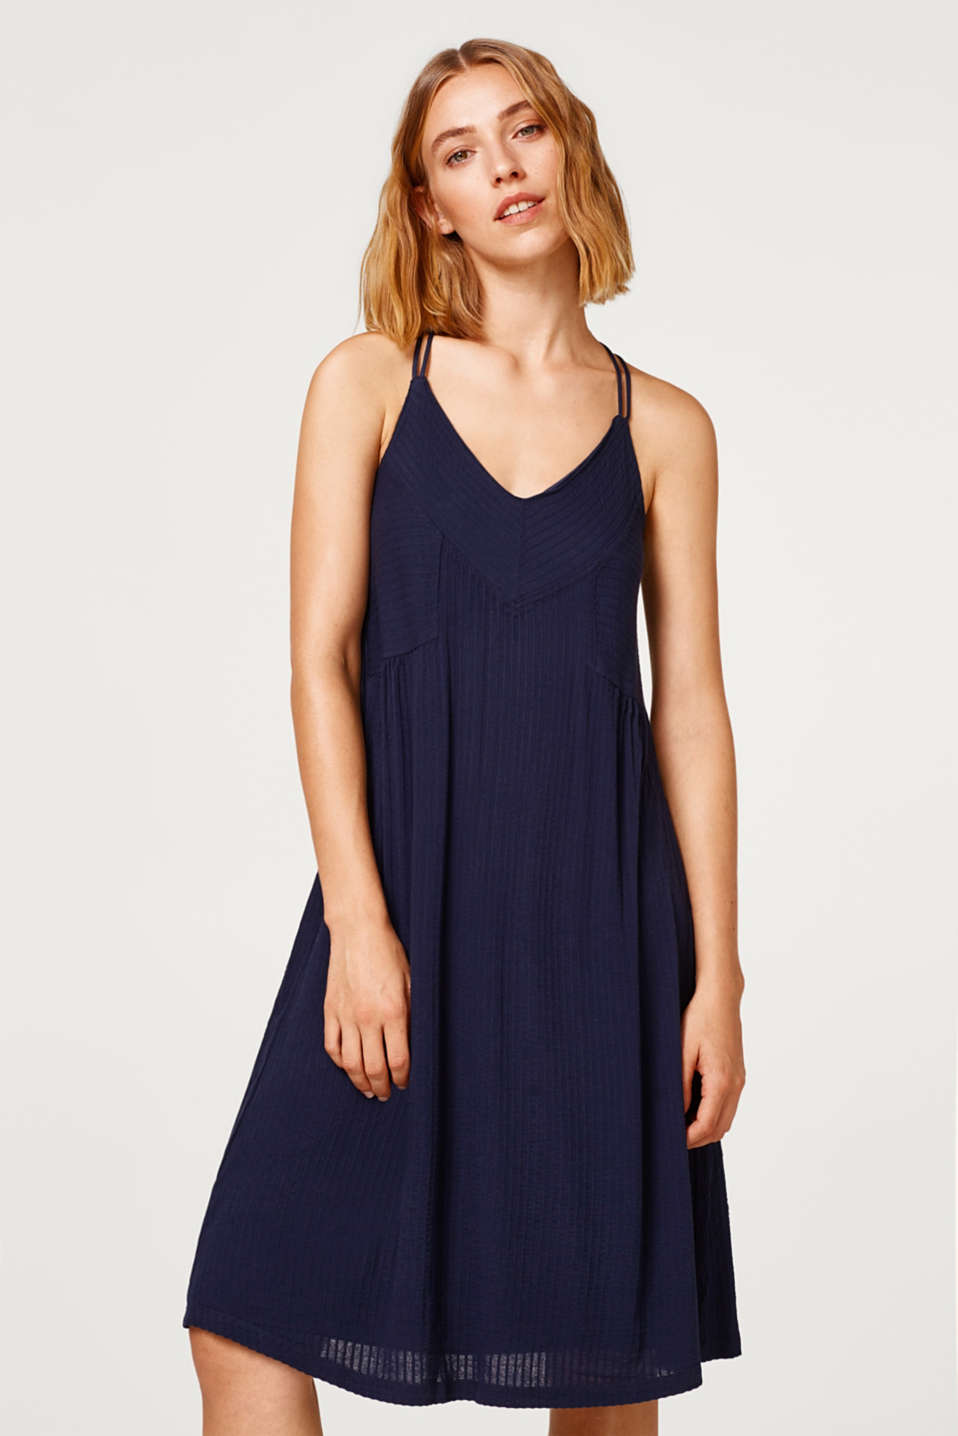 Esprit - Strappy dress made of jersey with a ribbed texture